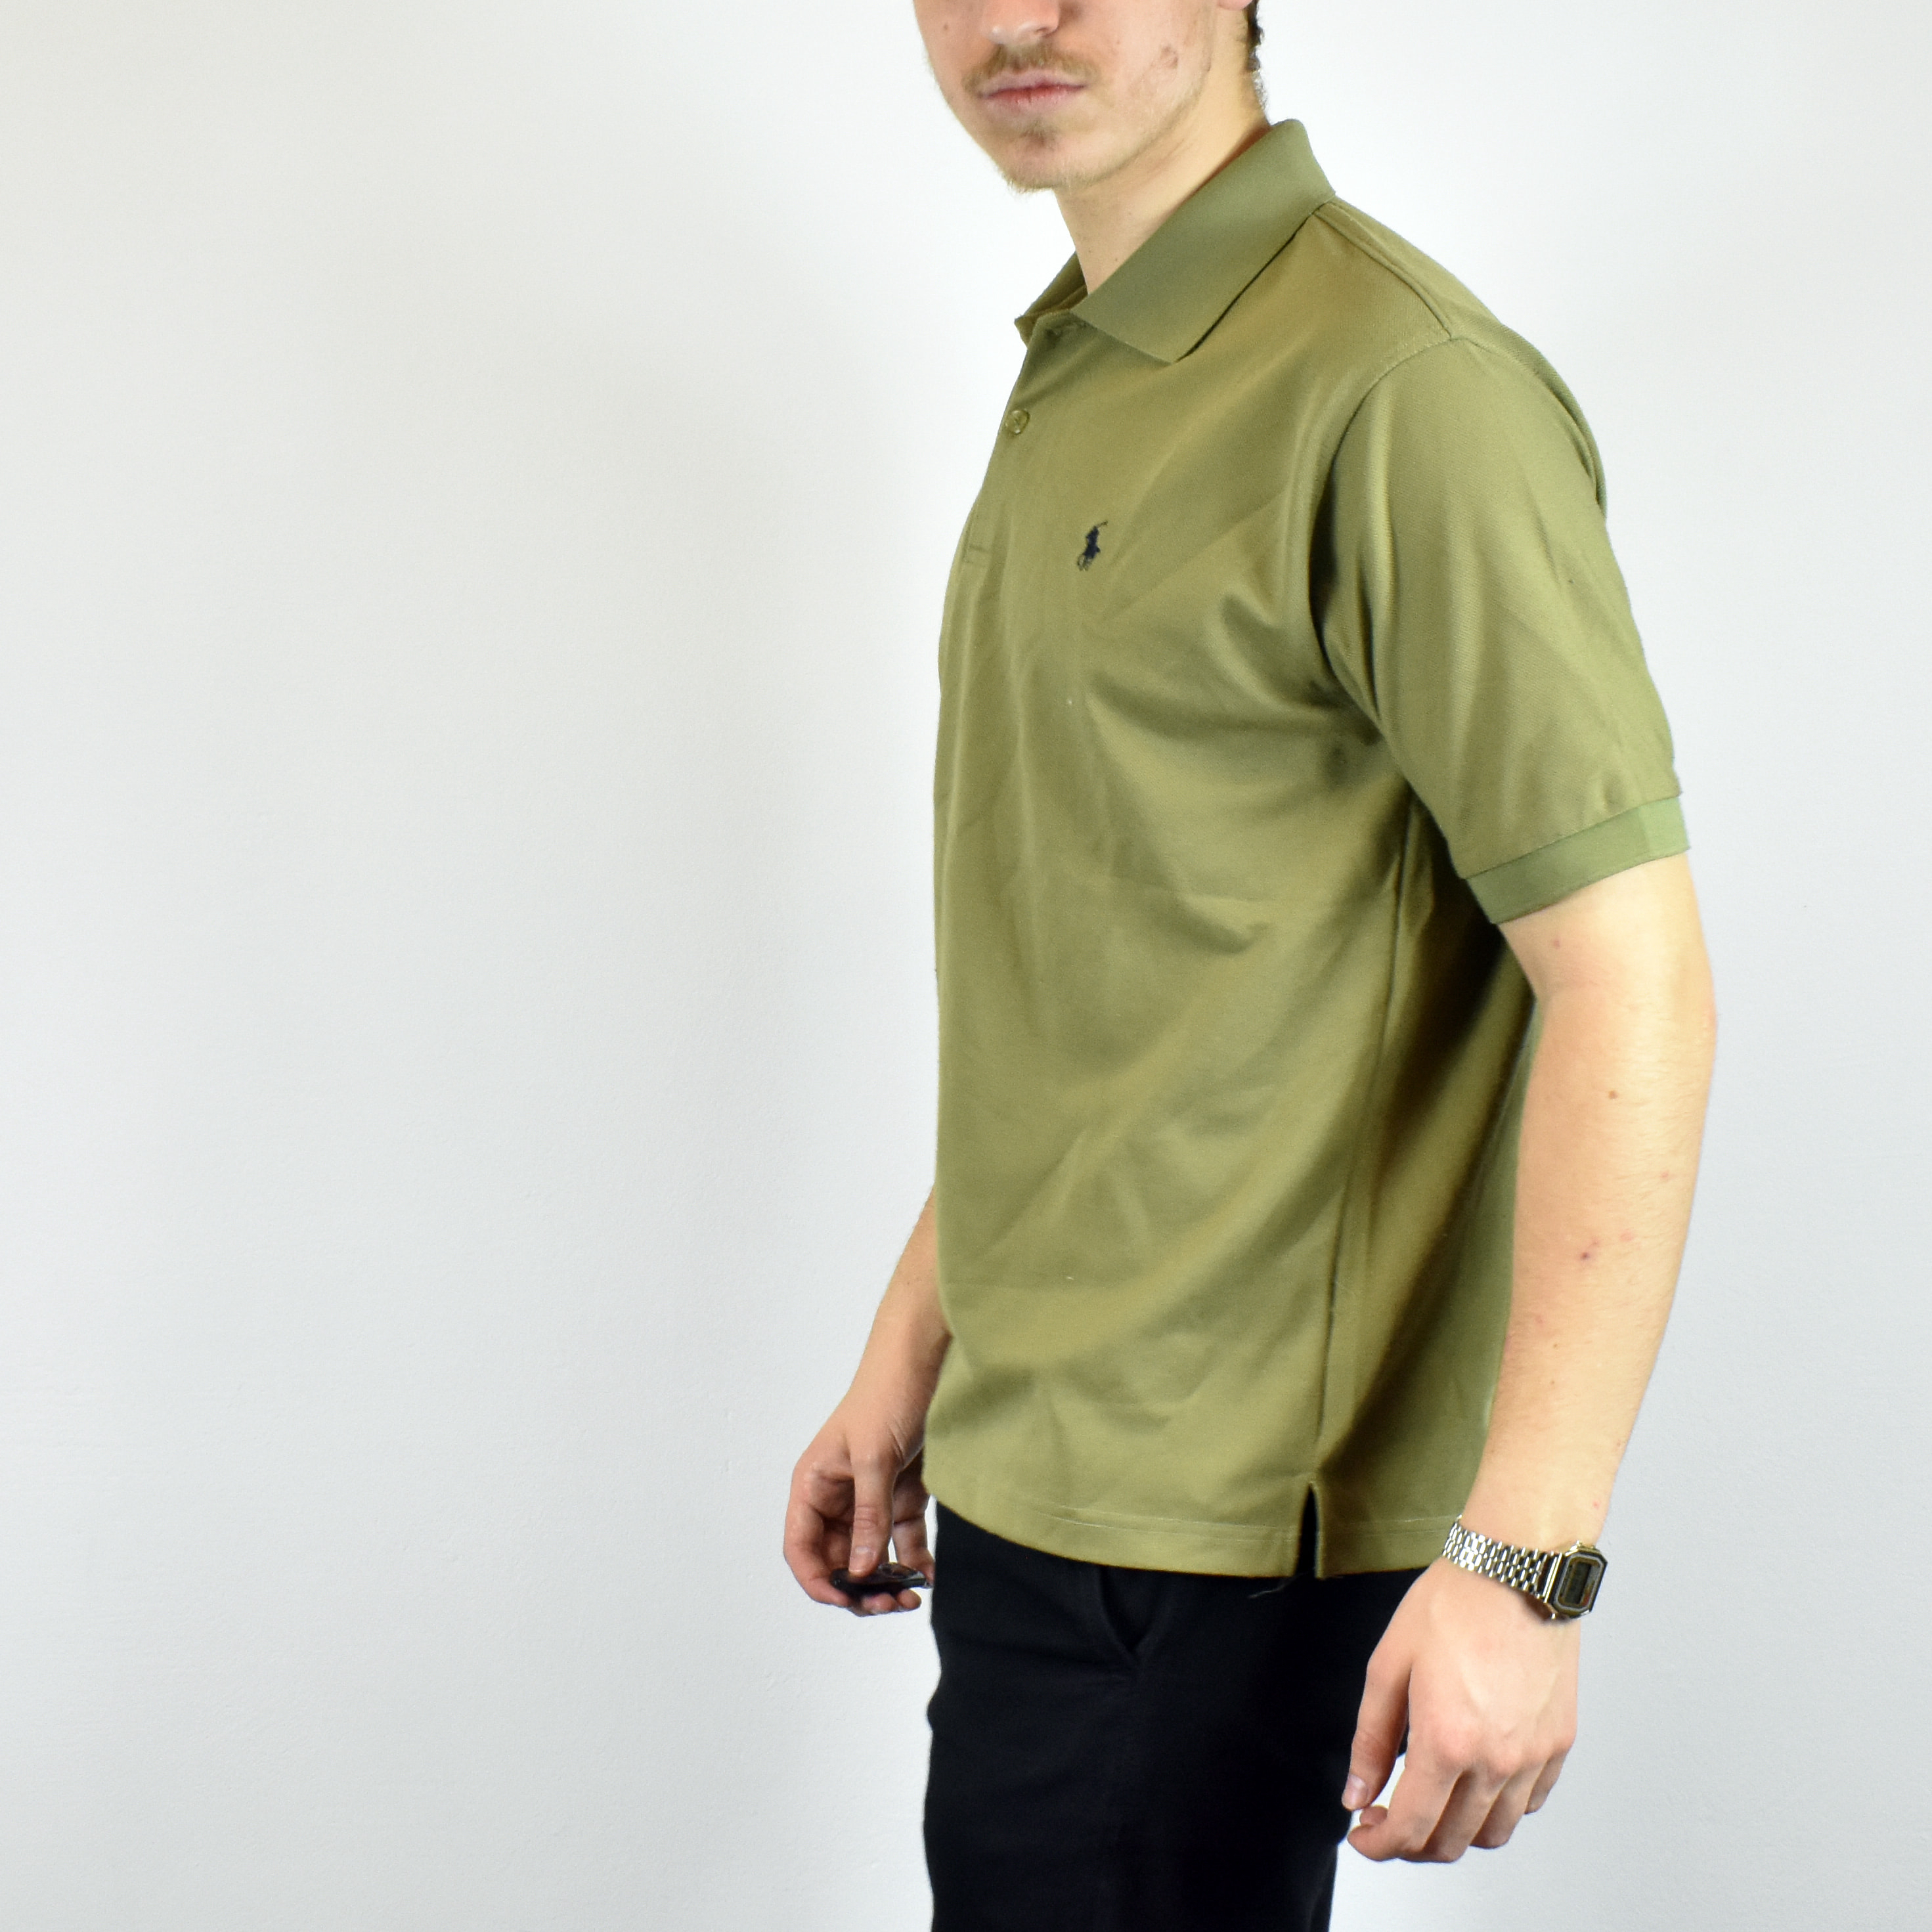 9ebab47d Unisex Vintage Ralph Lauren polo shirt in olive green has a logo on the  front size M